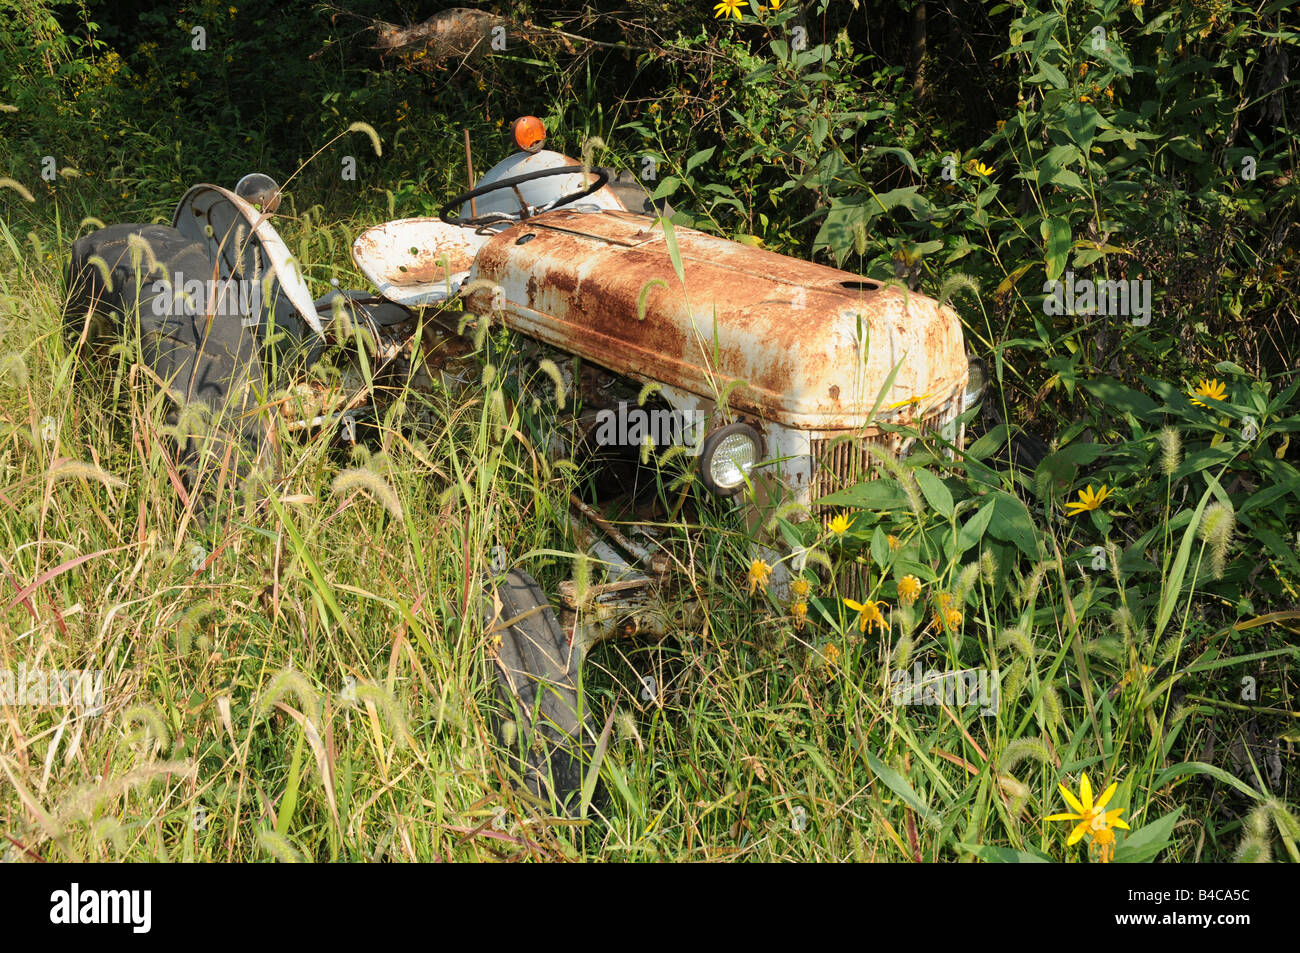 Old farm tractor no longer used and surrounded by weeds - Stock Image